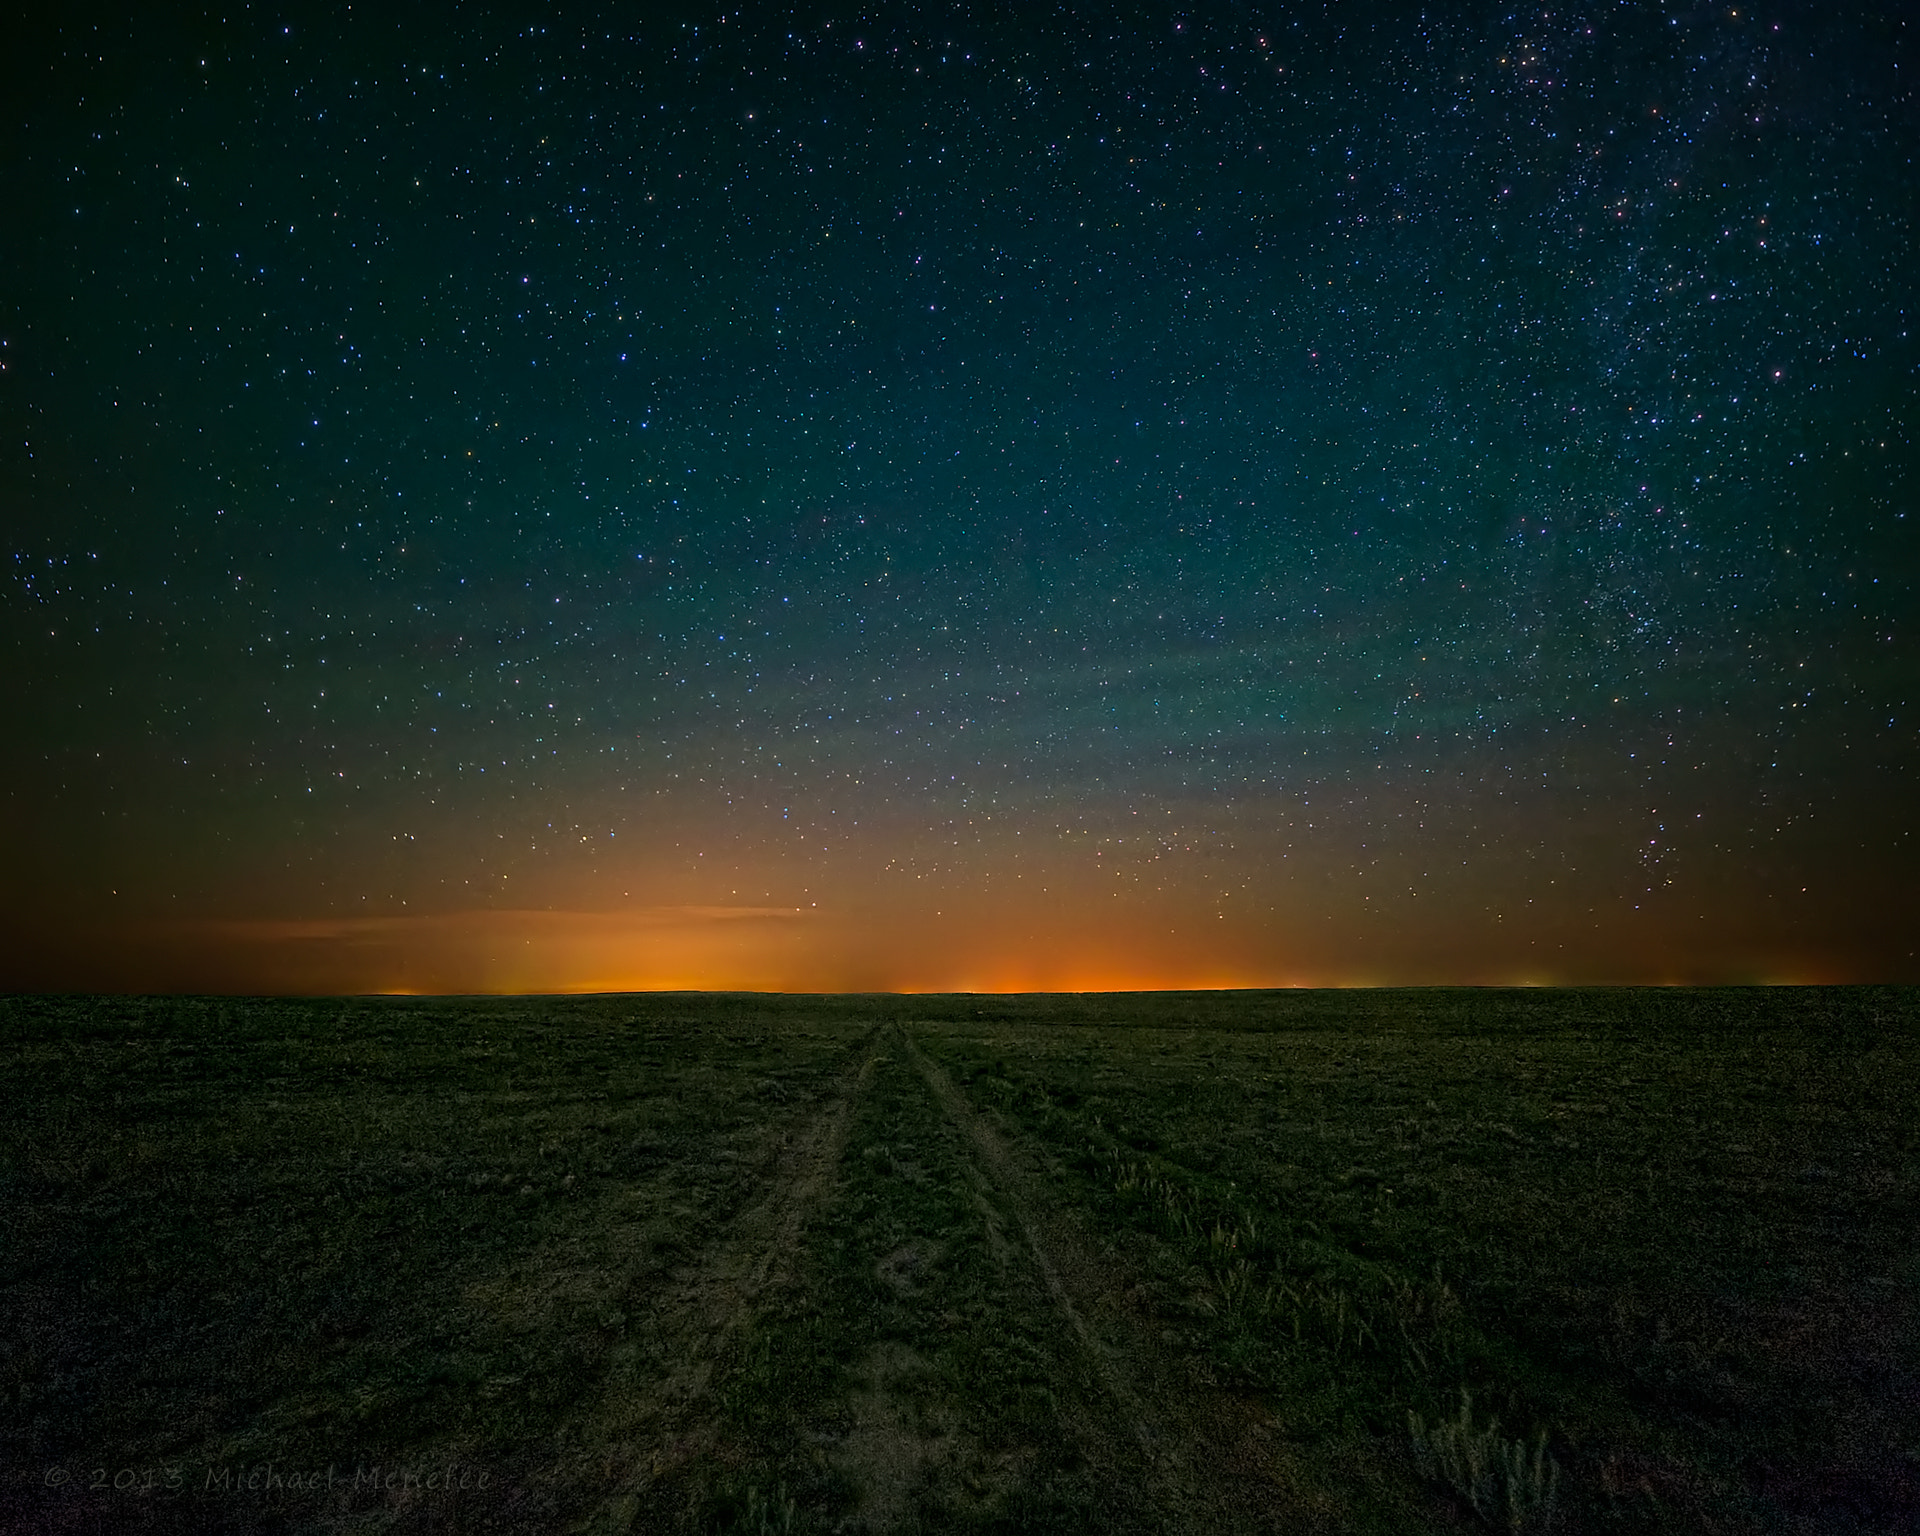 Photograph Luminescent Night Sky on the Pawnee by Michael Menefee on 500px